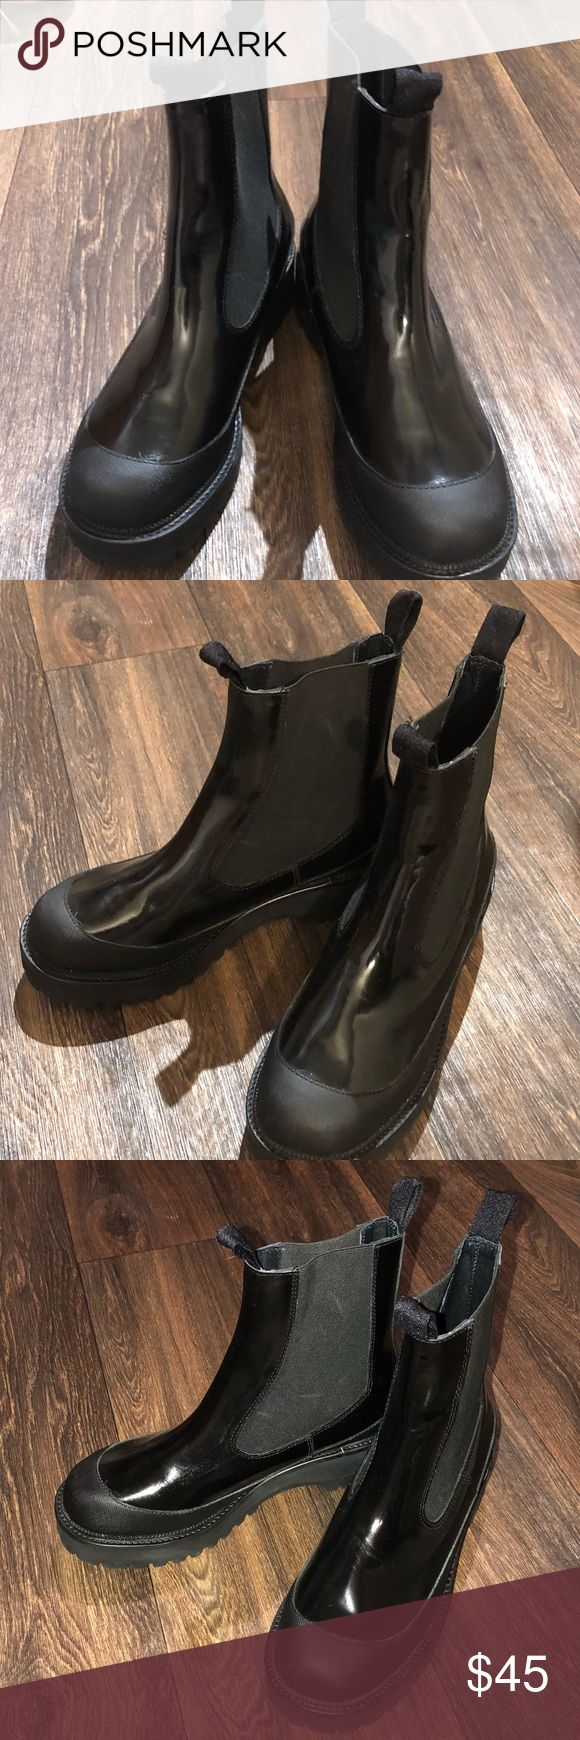 """Jeffrey Campbell El Niño glossy rain boots Size 9. Glossy black. Minor scuffing from being in display / being tried on. A classic Chelsea profile, oversized goring panels and a grippy ridged sole define a durable rain boot outfitted with a cushioned footbed and roomy round toe. 1 1/4"""" heel 6"""" shaft Pull-on style Cushioned footbed Synthetic upper, lining and sole Jeffrey Campbell Shoes Winter & Rain Boots"""